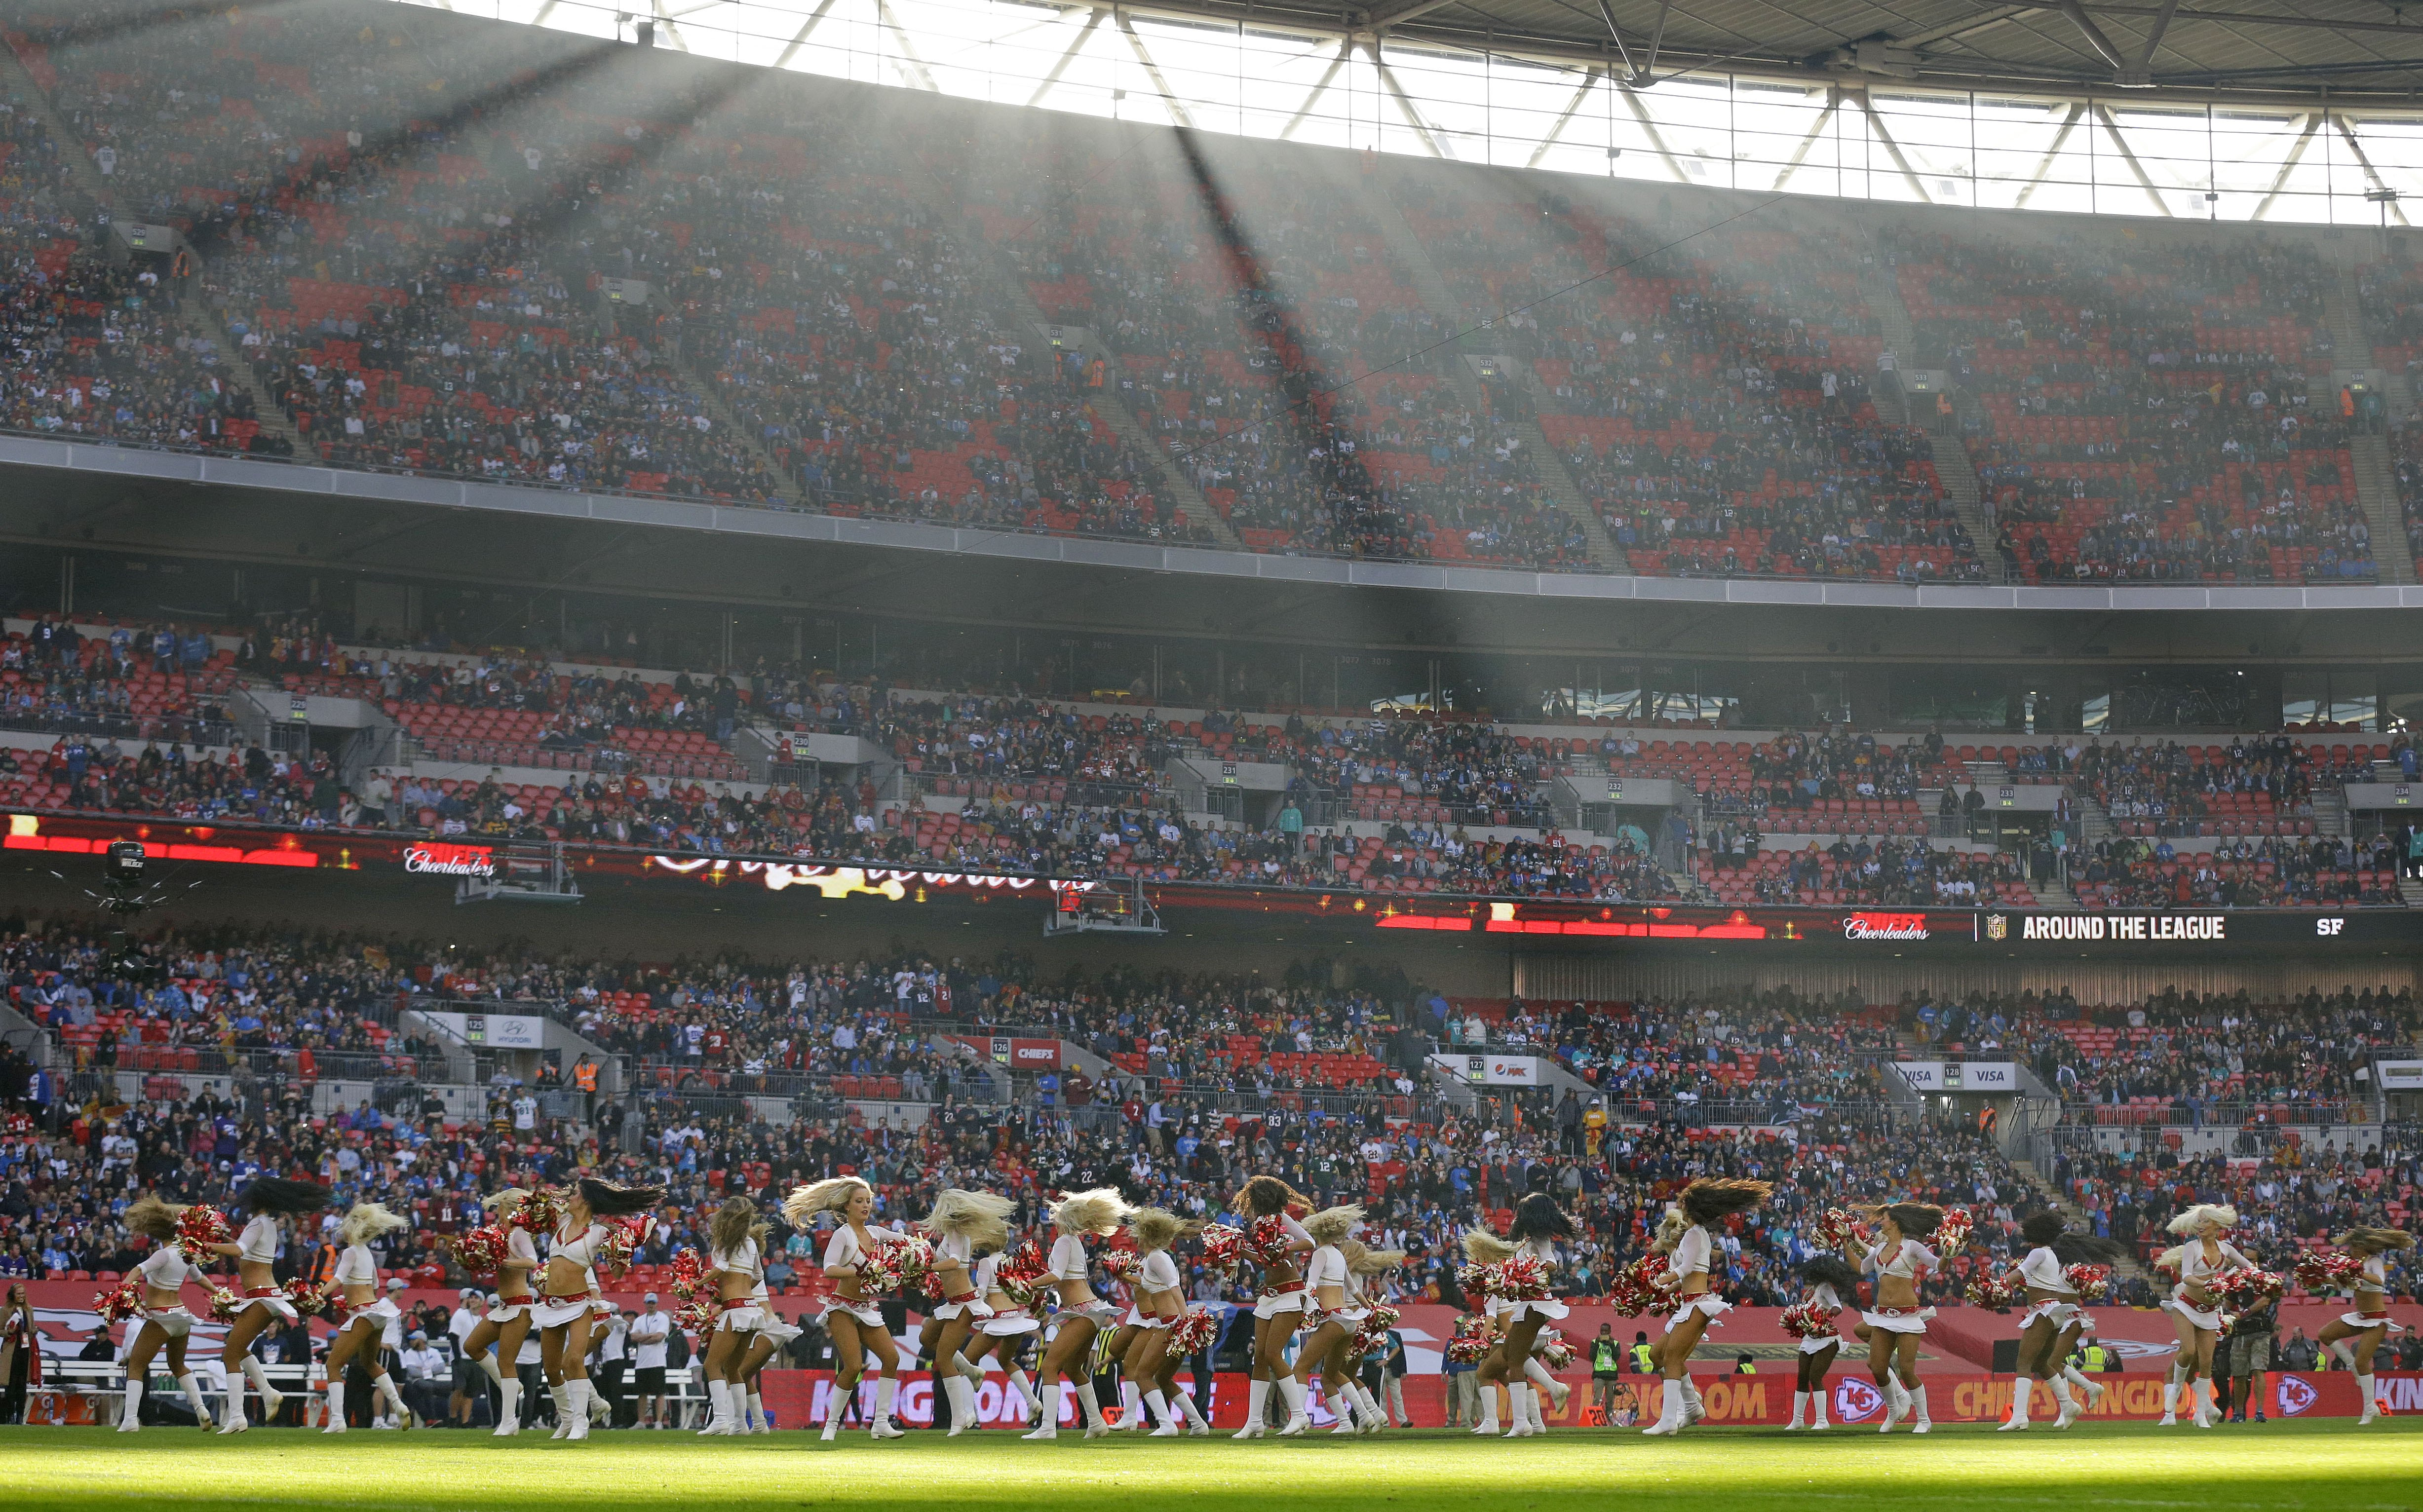 Cheerleaders perform before the NFL football game between Detroit Lions and Kansas City Chiefs Wembley Stadium in London,  Sunday, Nov. 1, 2015. (AP Photo/Matt Dunham)